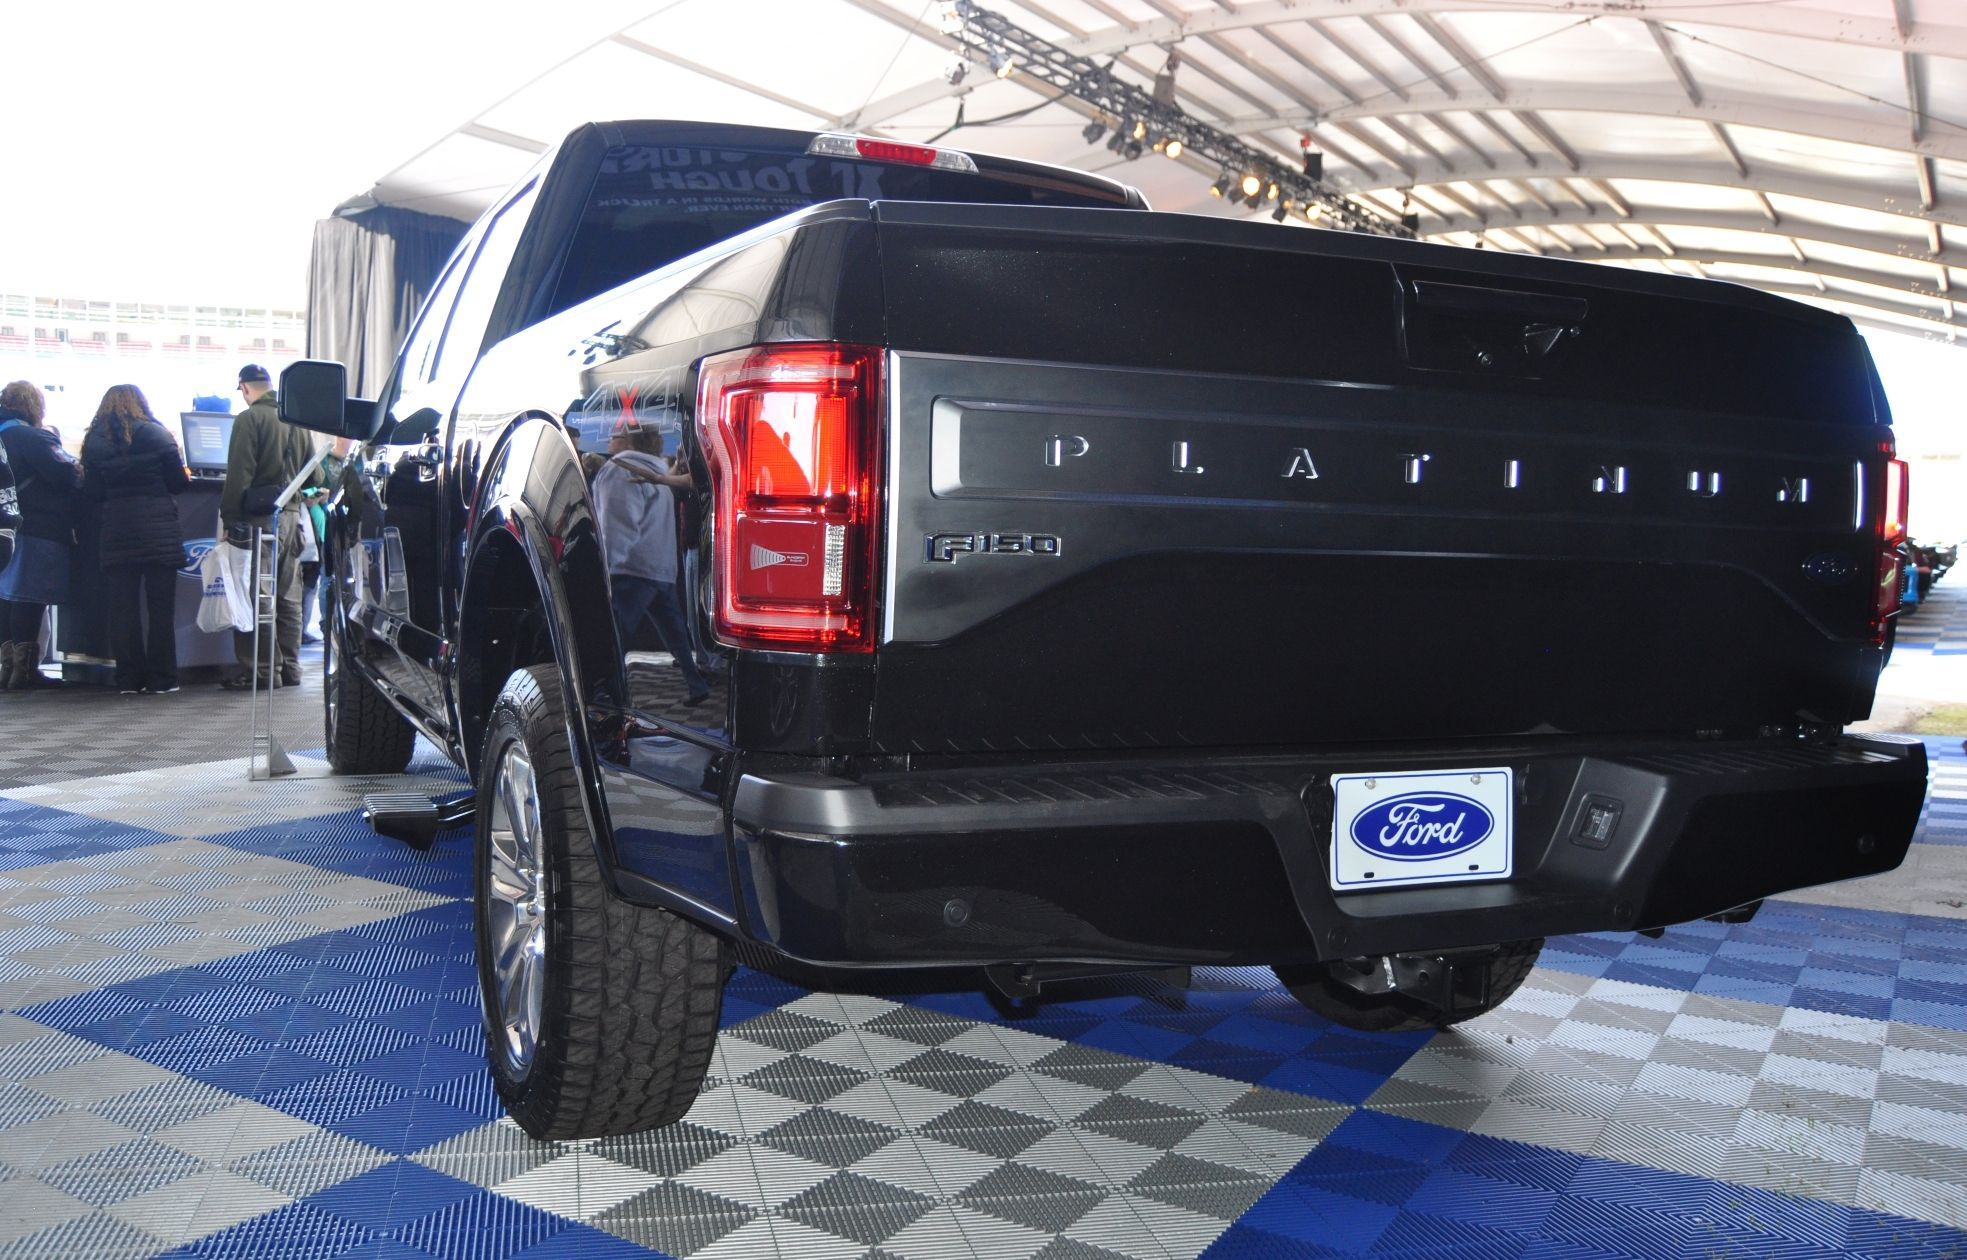 Awesome 2015 ford f150 limited car images hd ford f150 harley davidson 2014 wallpaper 2458 at cars wallpapers best cool cars pinterest ford f150